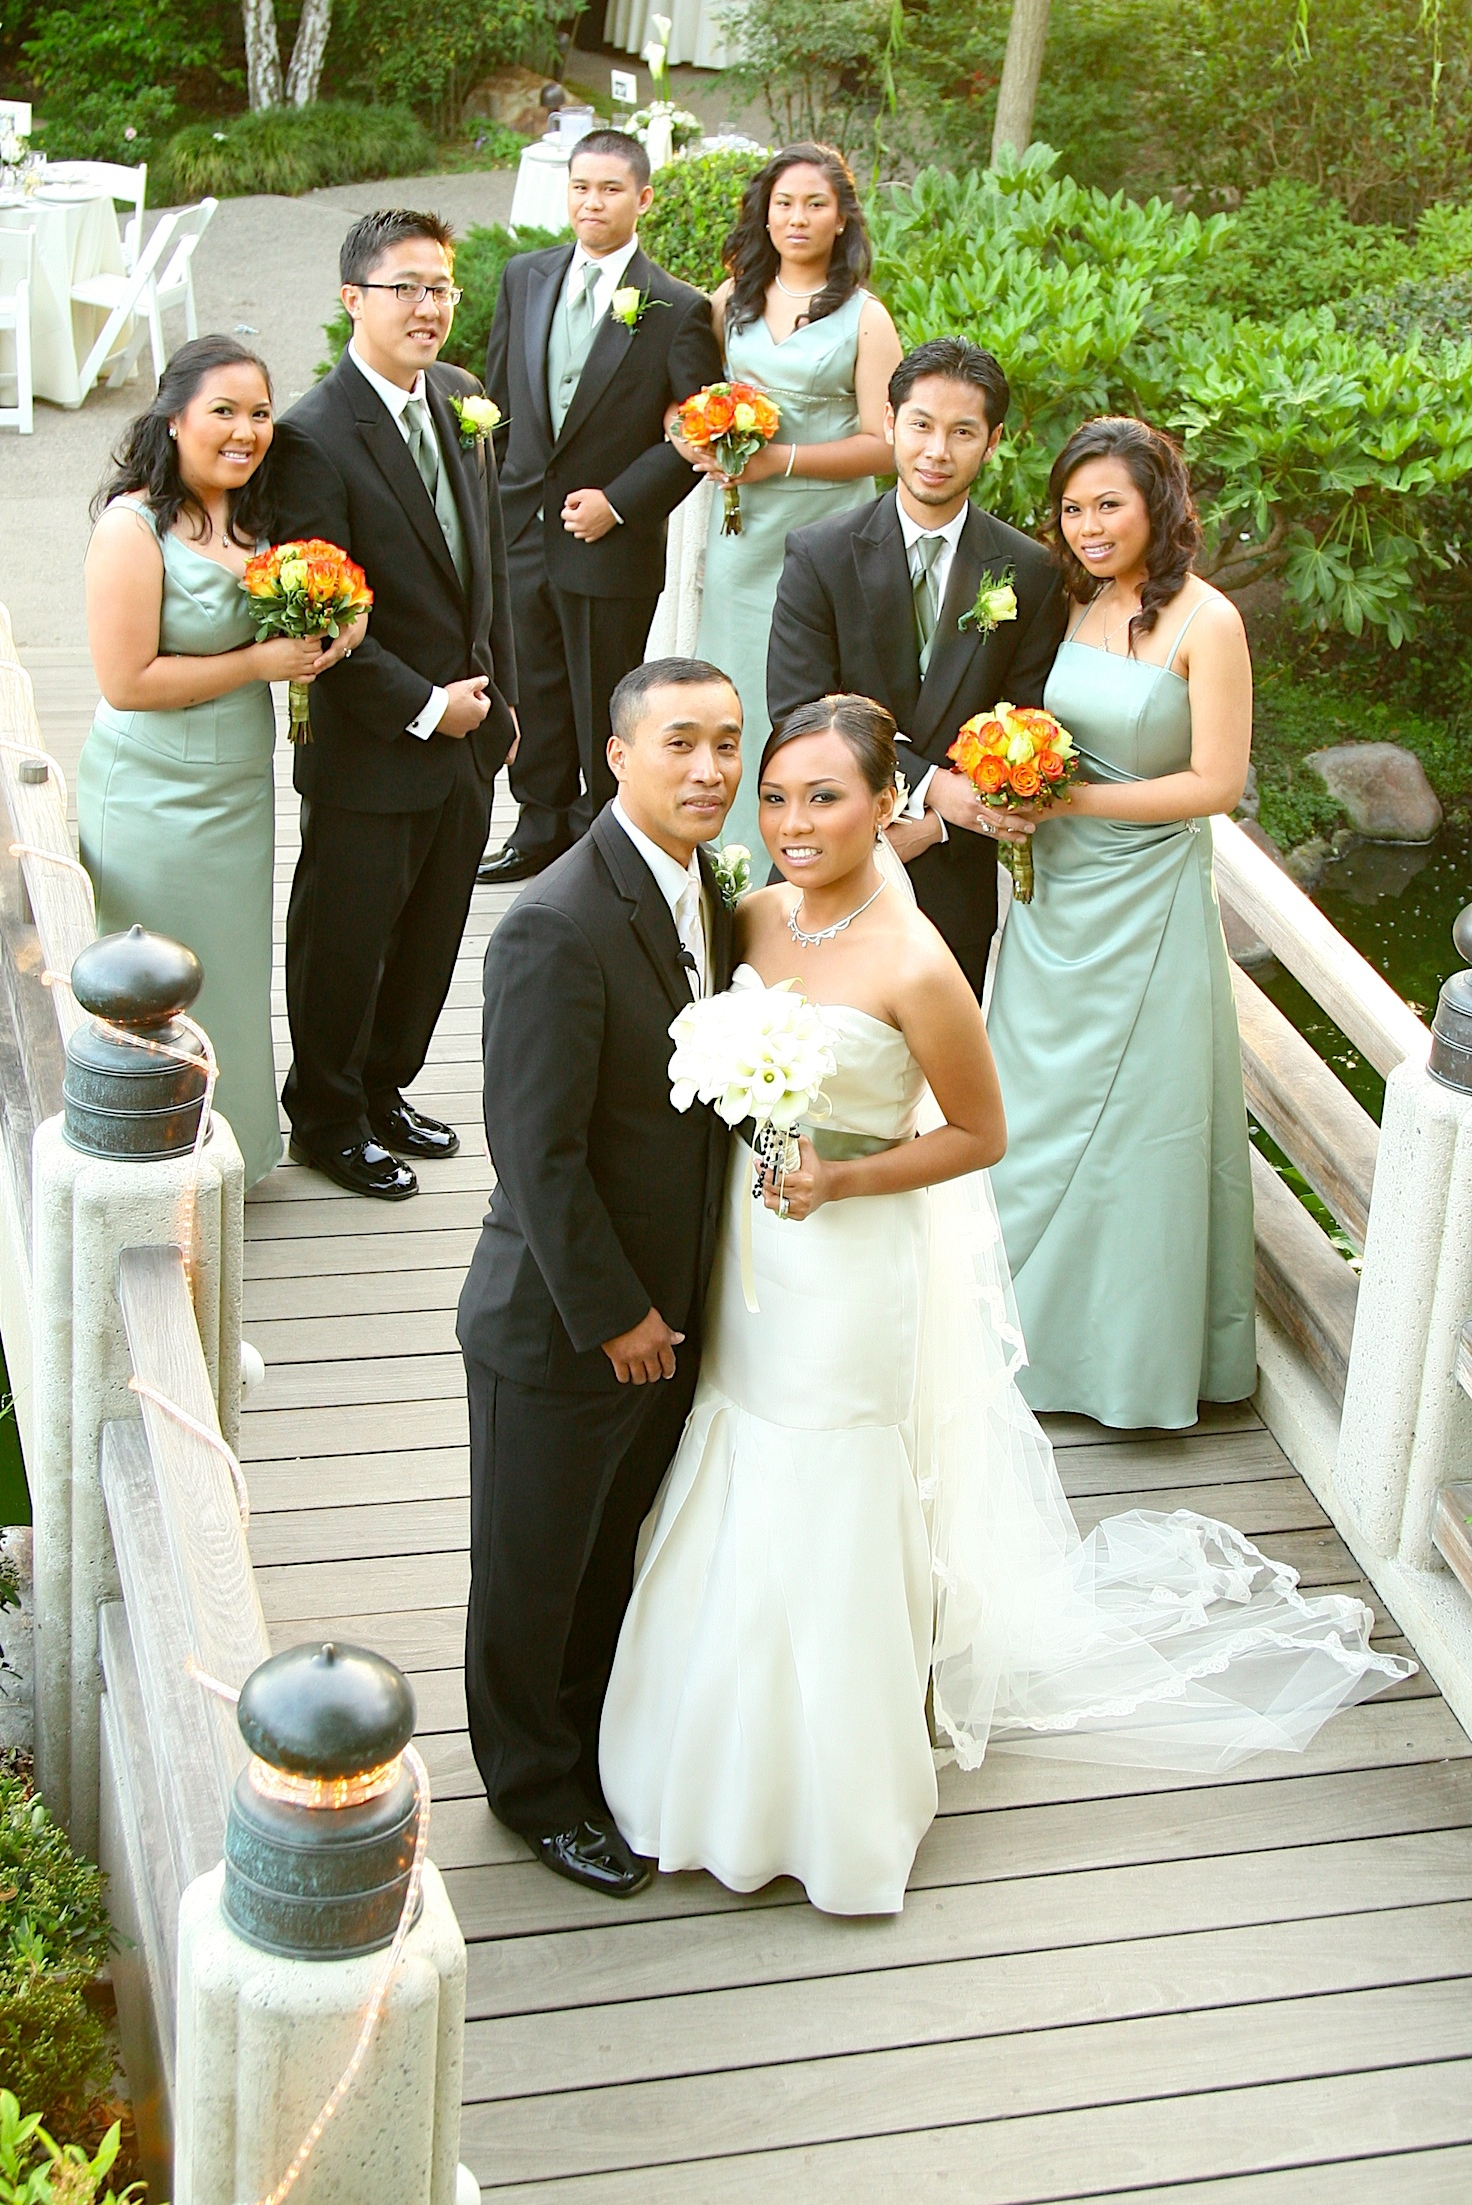 Bridesmaids, Bridesmaids Dresses, Fashion, white, orange, green, gold, Wedding, Party